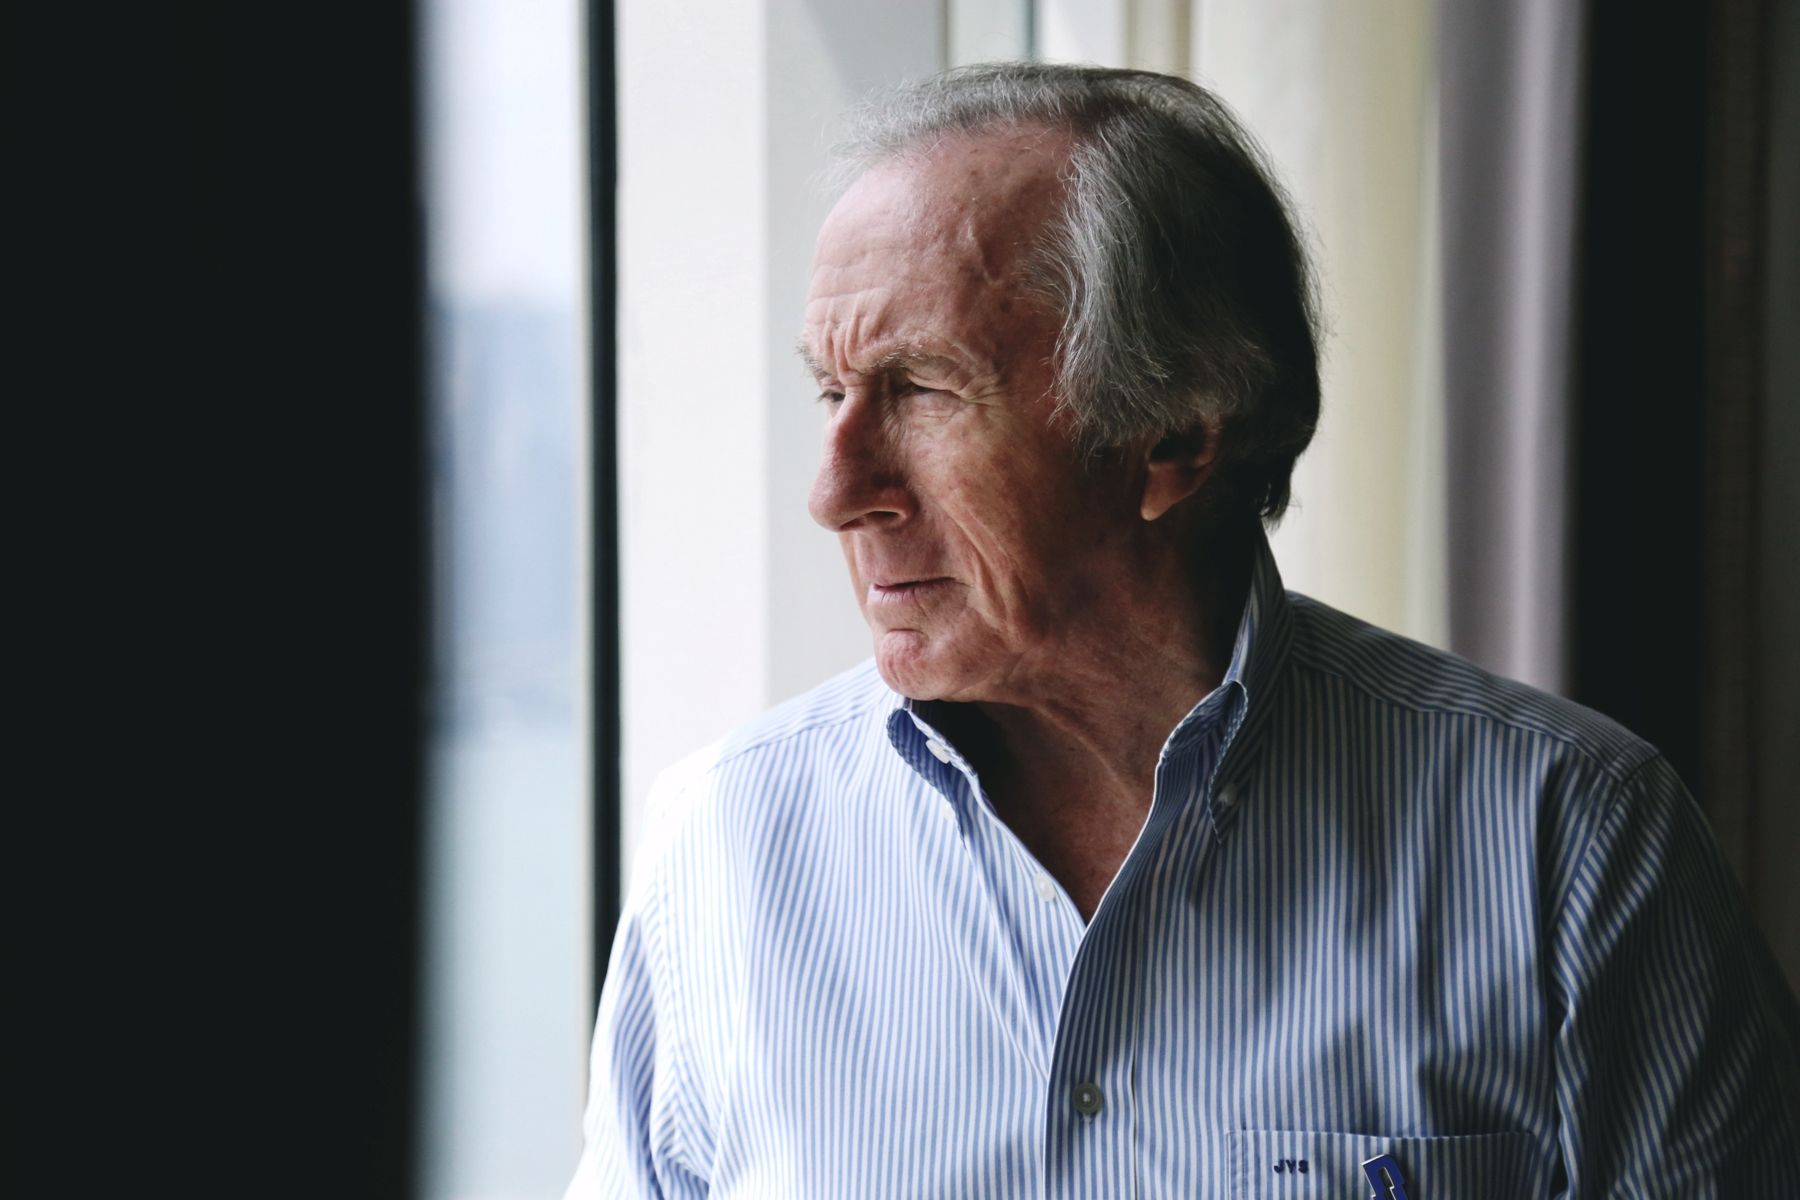 Sir Jackie Stewart and the Race Against Dementia